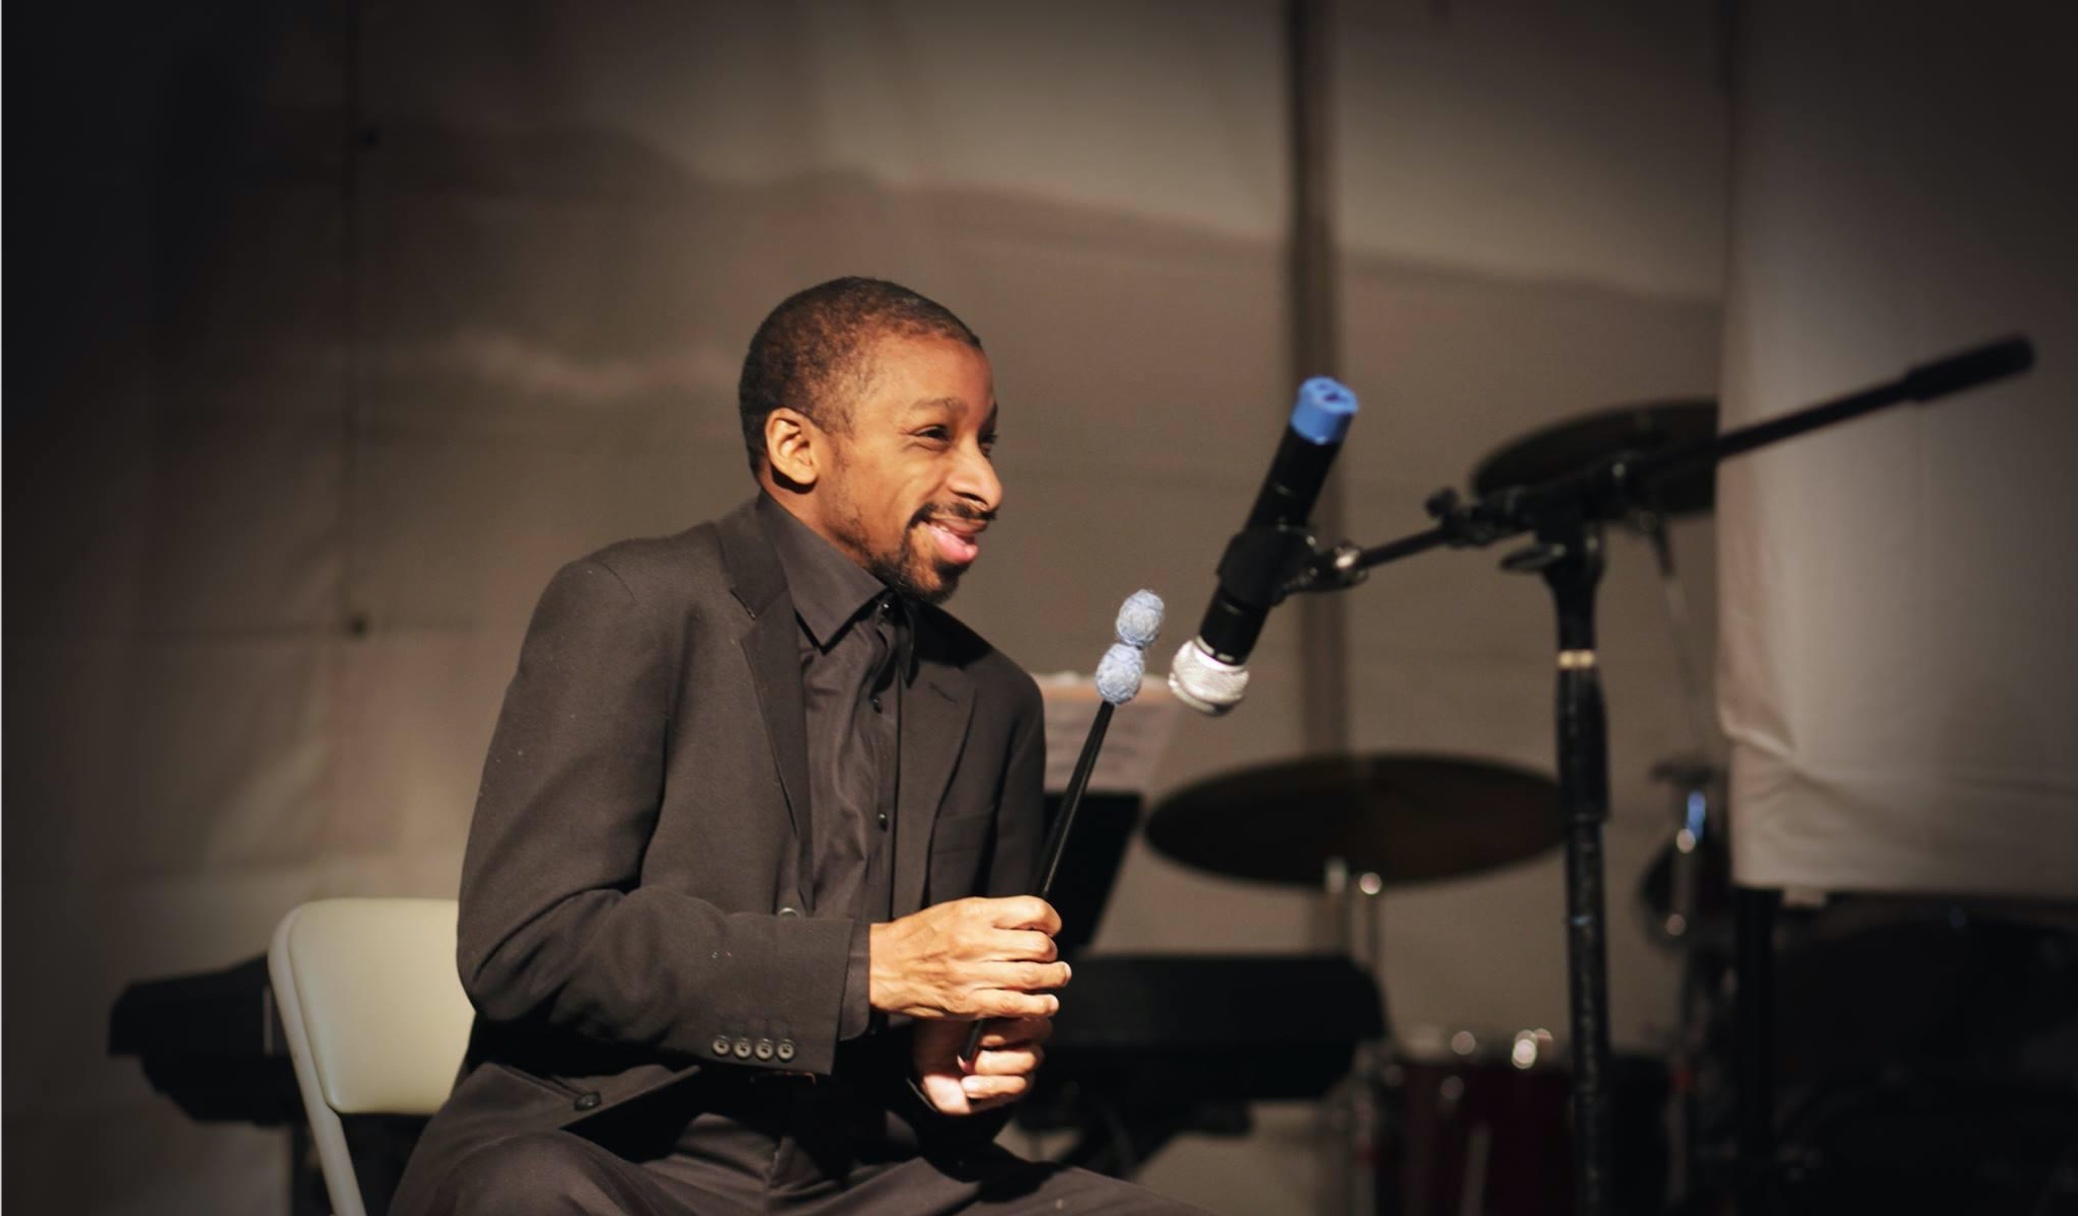 Smiling man in black suit sitting in front of microphone holding a drumstick playing music.